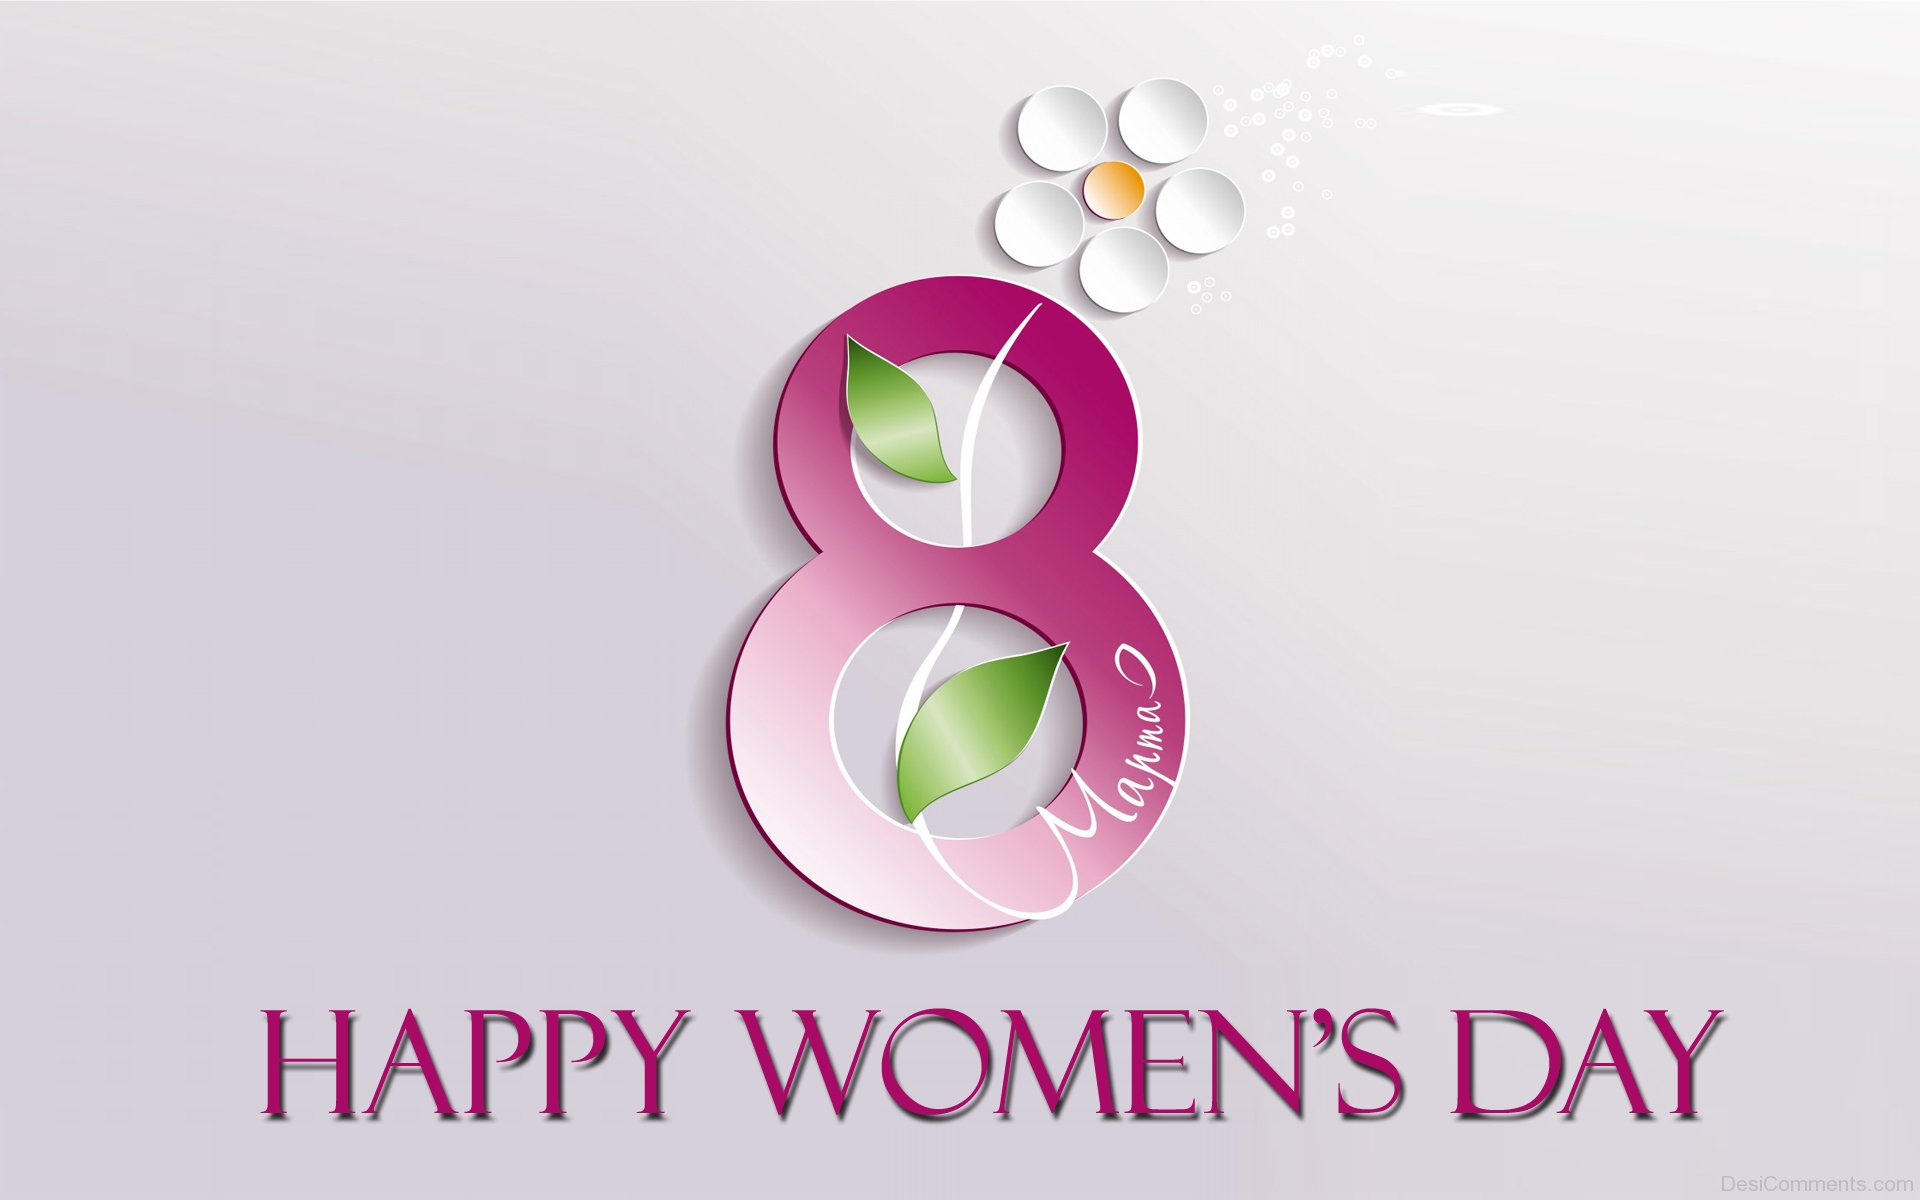 Happy Women's Day WhatsApp Images